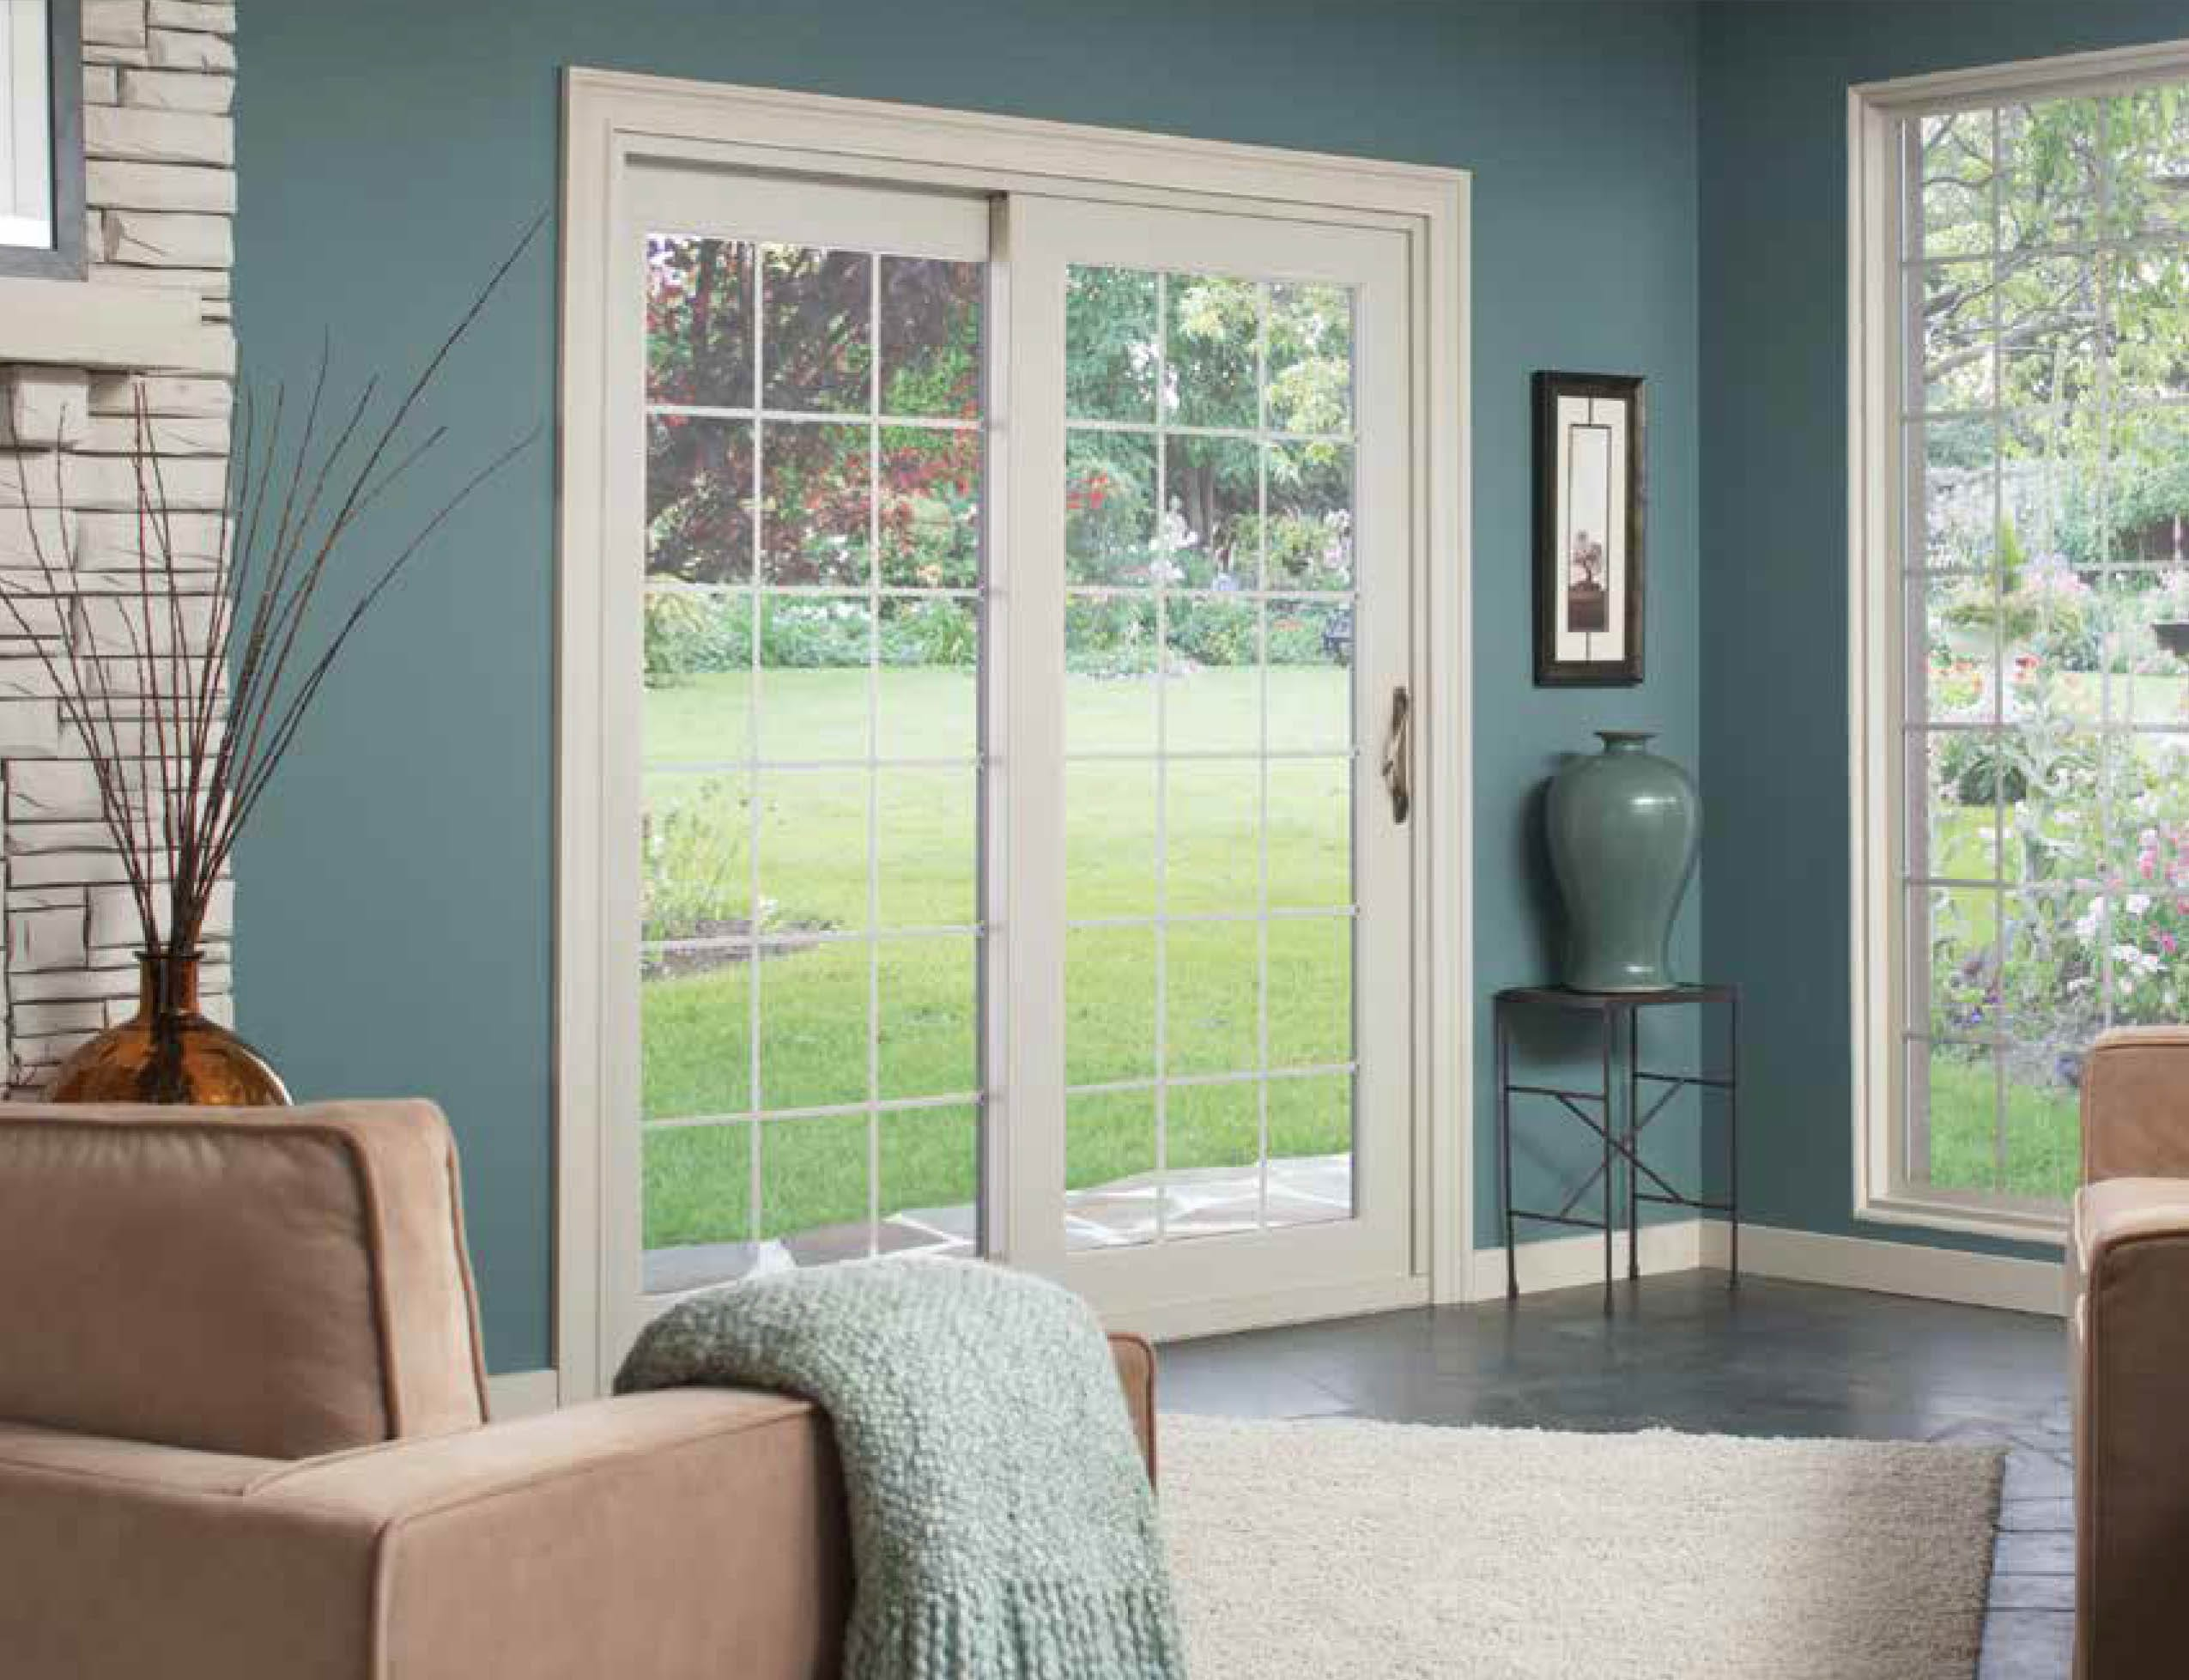 Patio Doors Sliding: Patio Doors Replacement, Installation & Repair